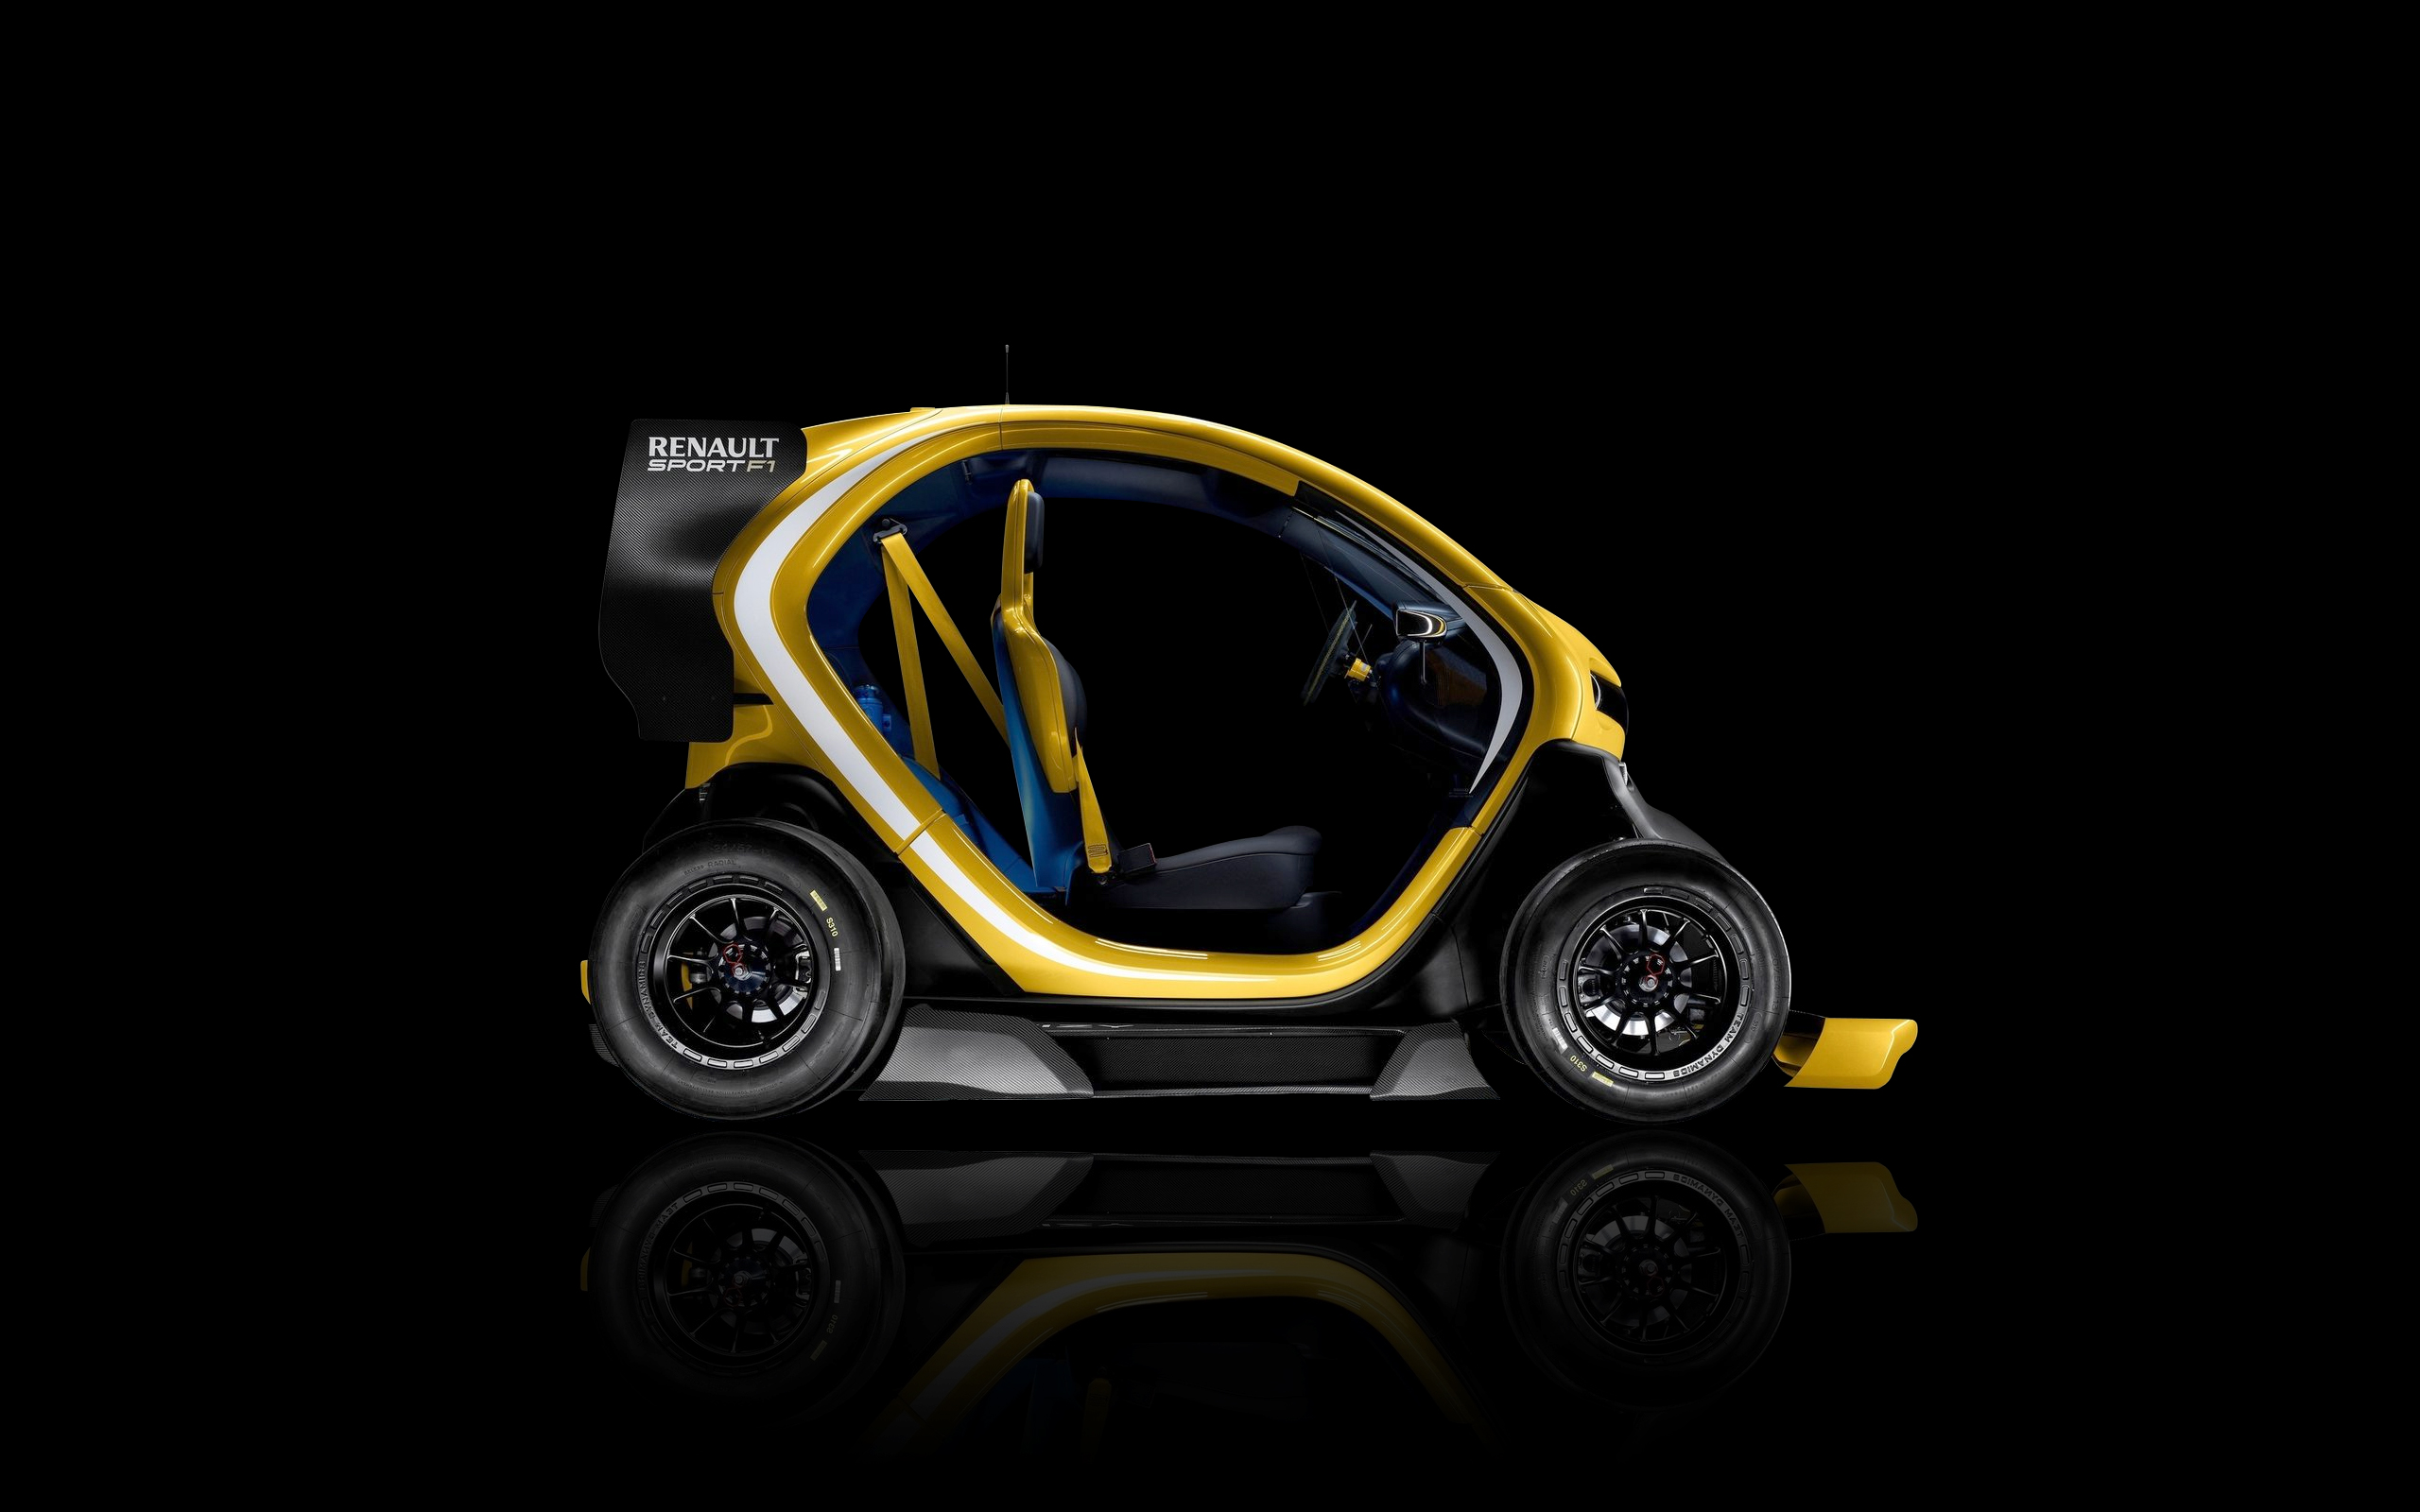 Hoonigan Cars Wallpaper Daily Wallpaper Renault Twizy Sport F1 Exclusive I